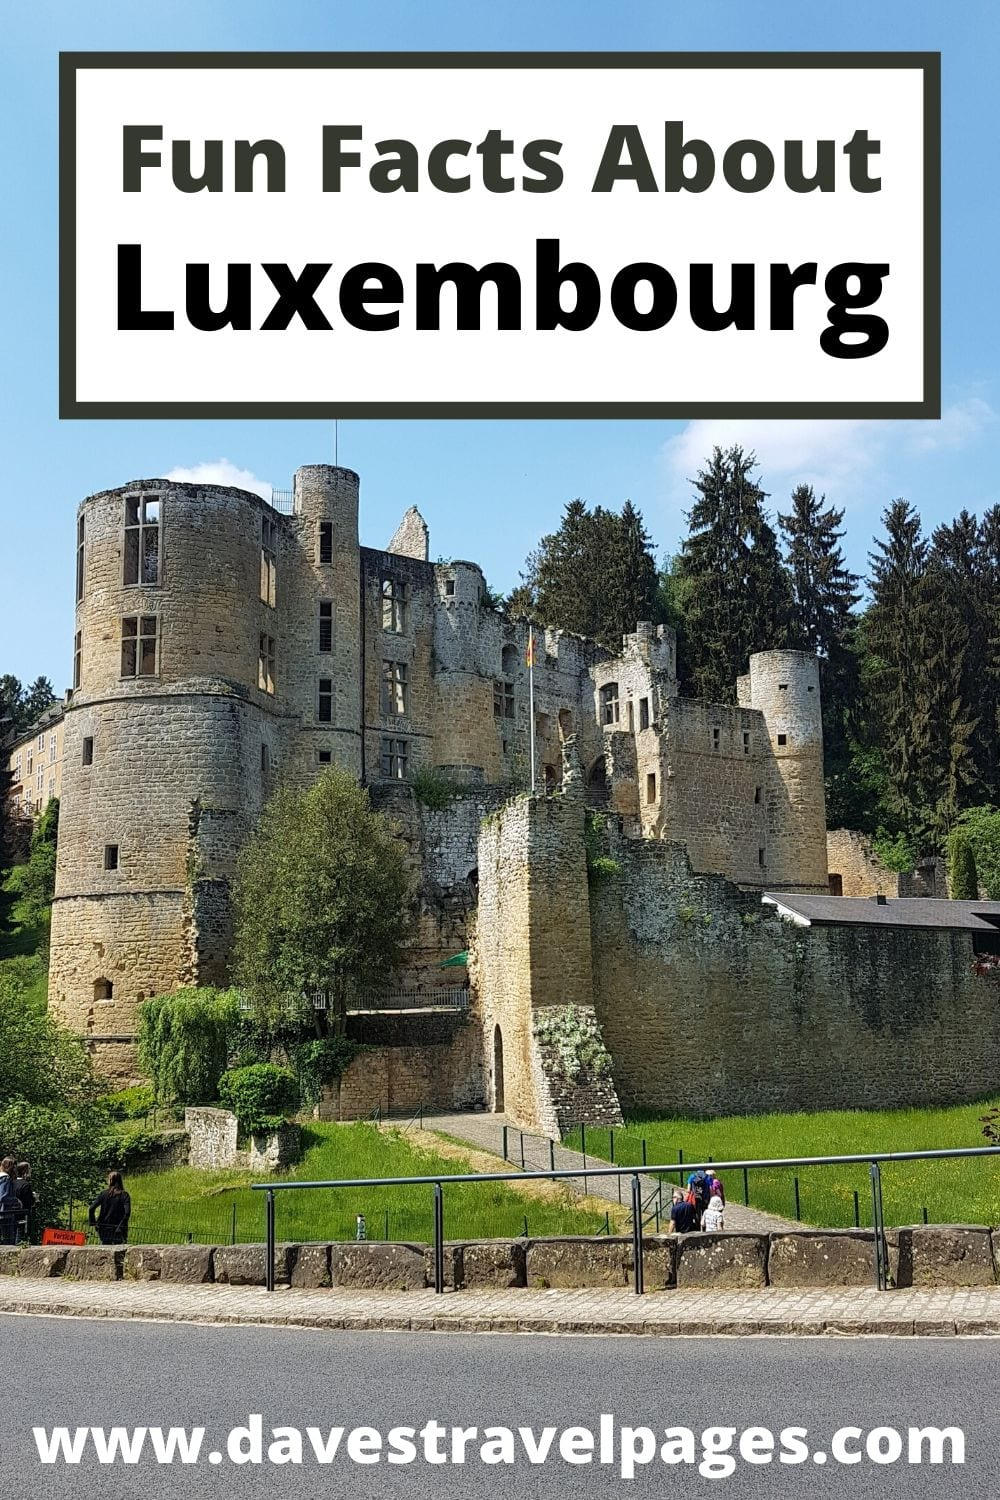 10 fun facts about Luxembourg you might not know